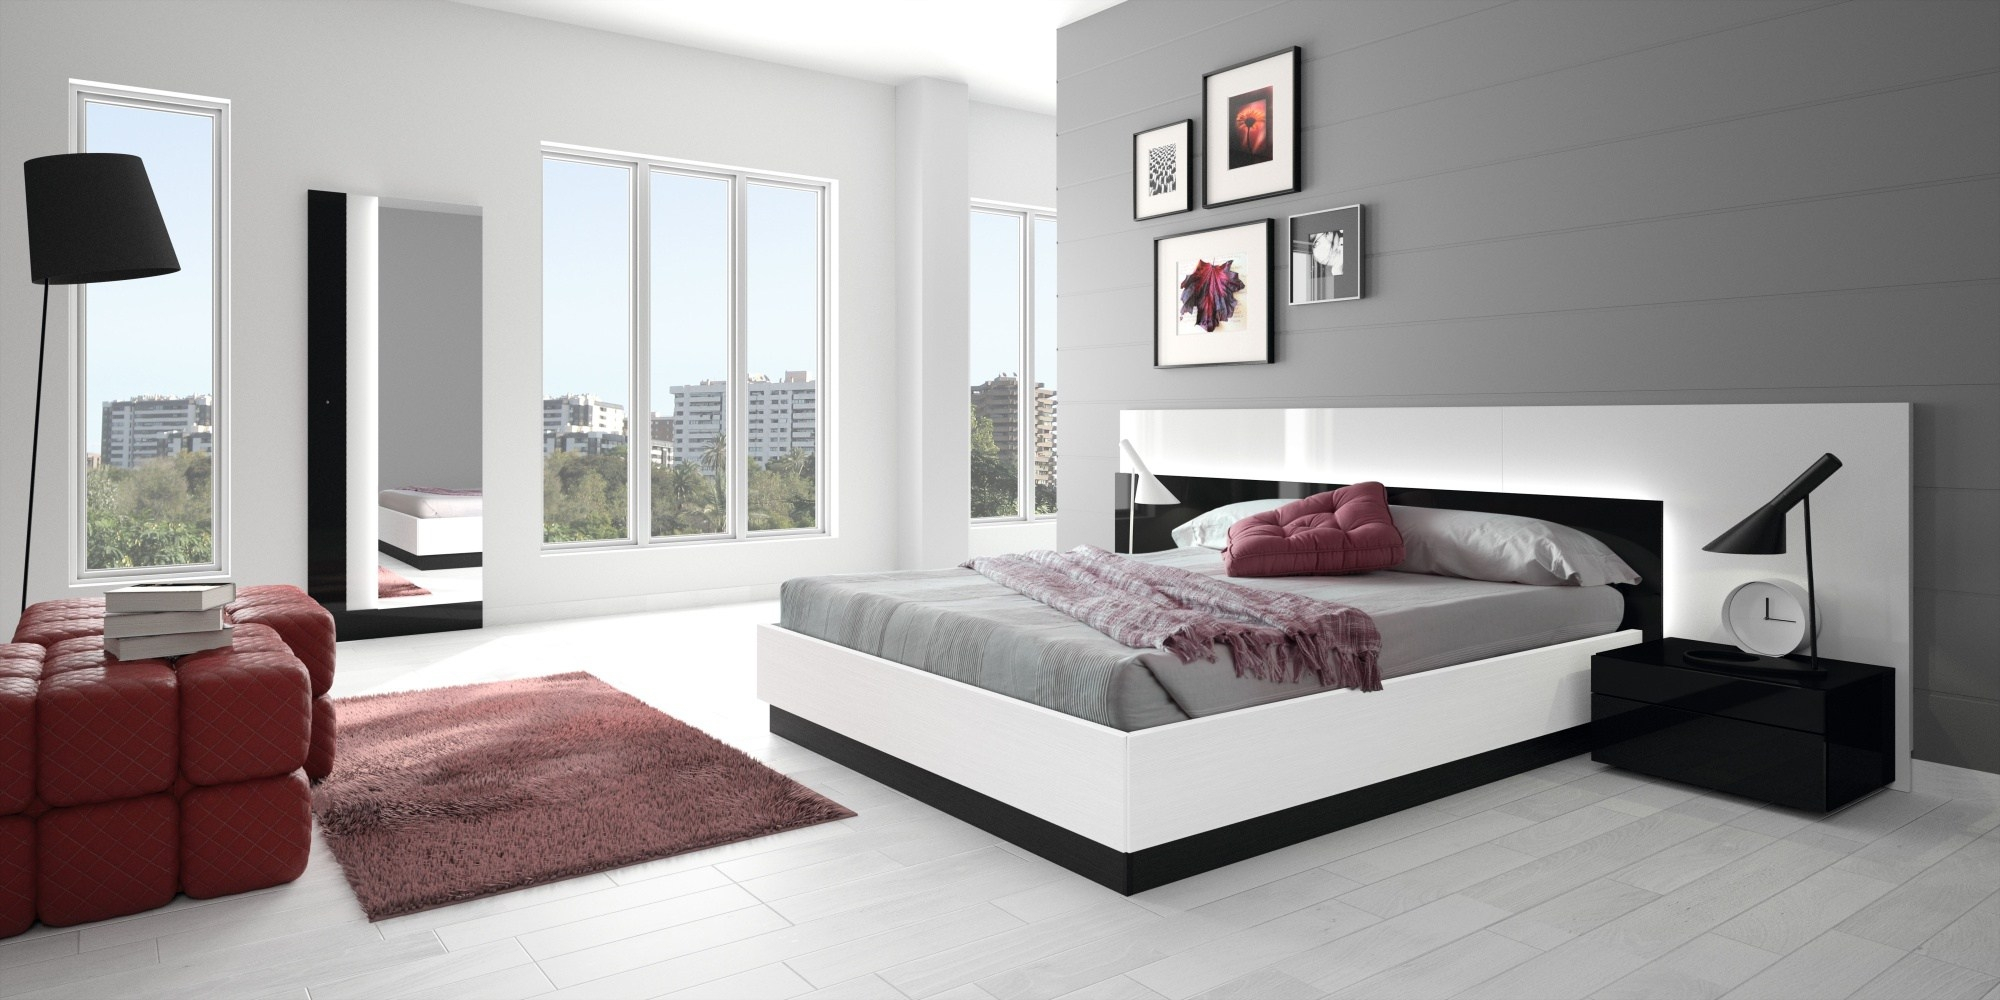 Bedroom Amazing Modern Bedroom Sets For Sale 27 Cot Designs Of in 15 Smart Concepts of How to Craft Modern Bedroom Sets For Sale